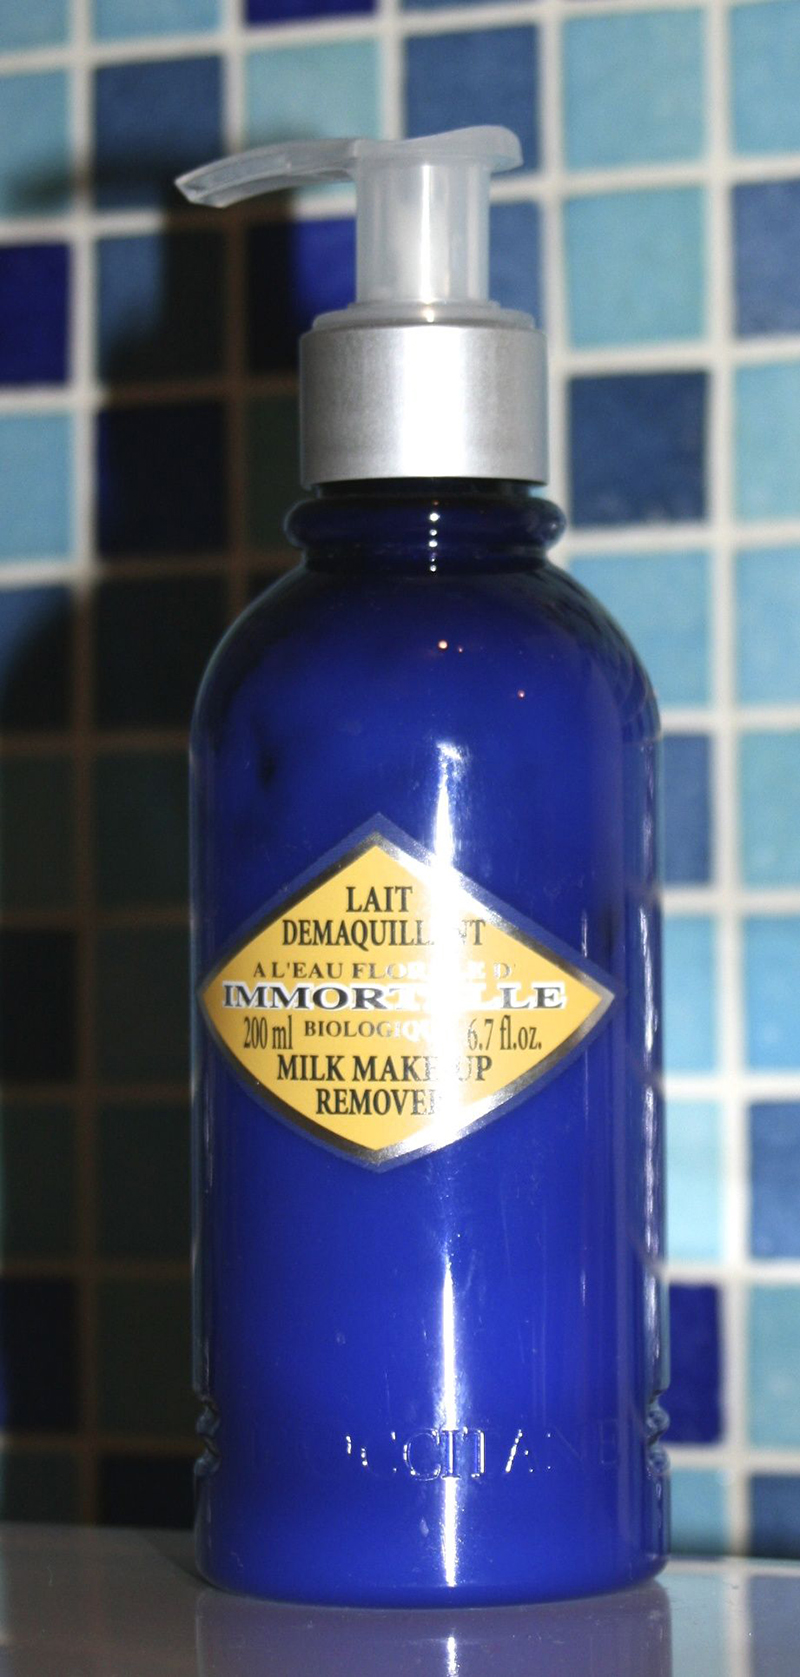 lait-démaquillant-immortelle-occitane